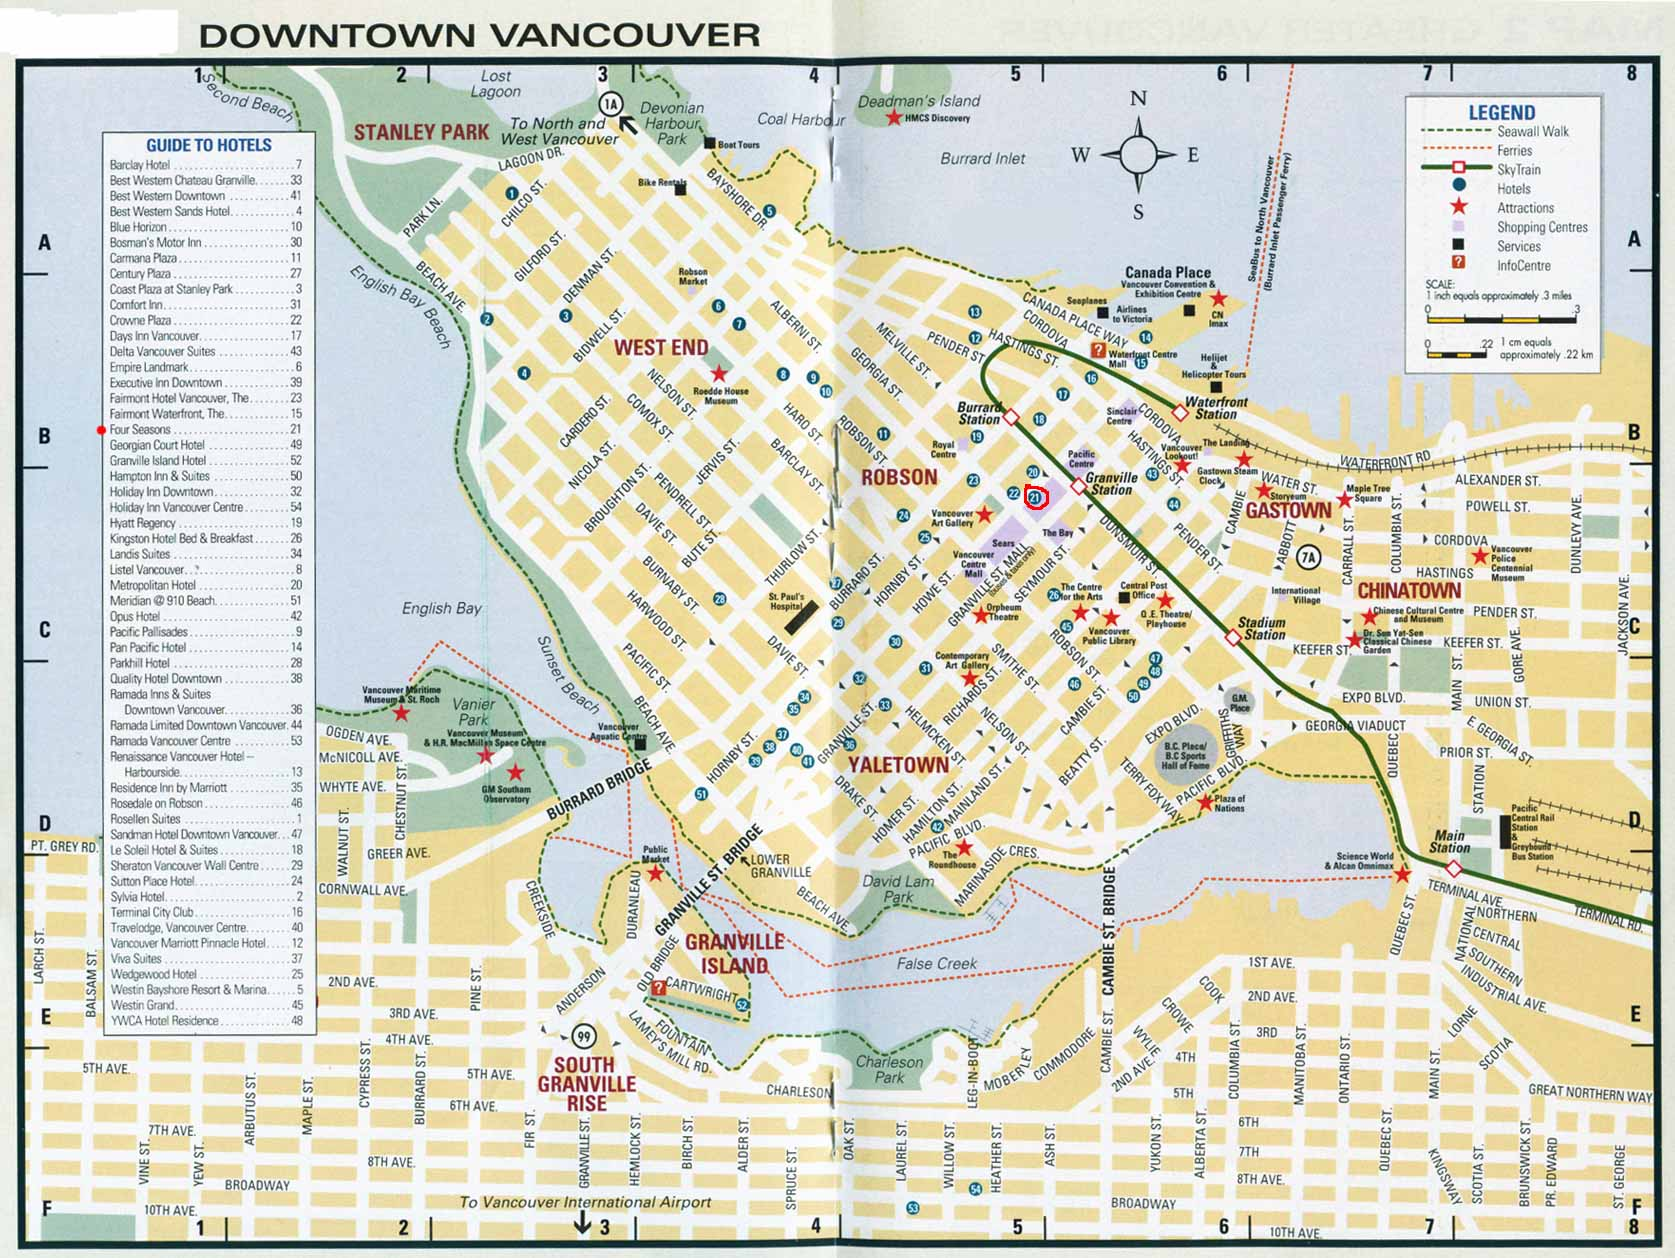 Large vancouver maps for free download and print high resolution large map of vancouver 1 gumiabroncs Choice Image